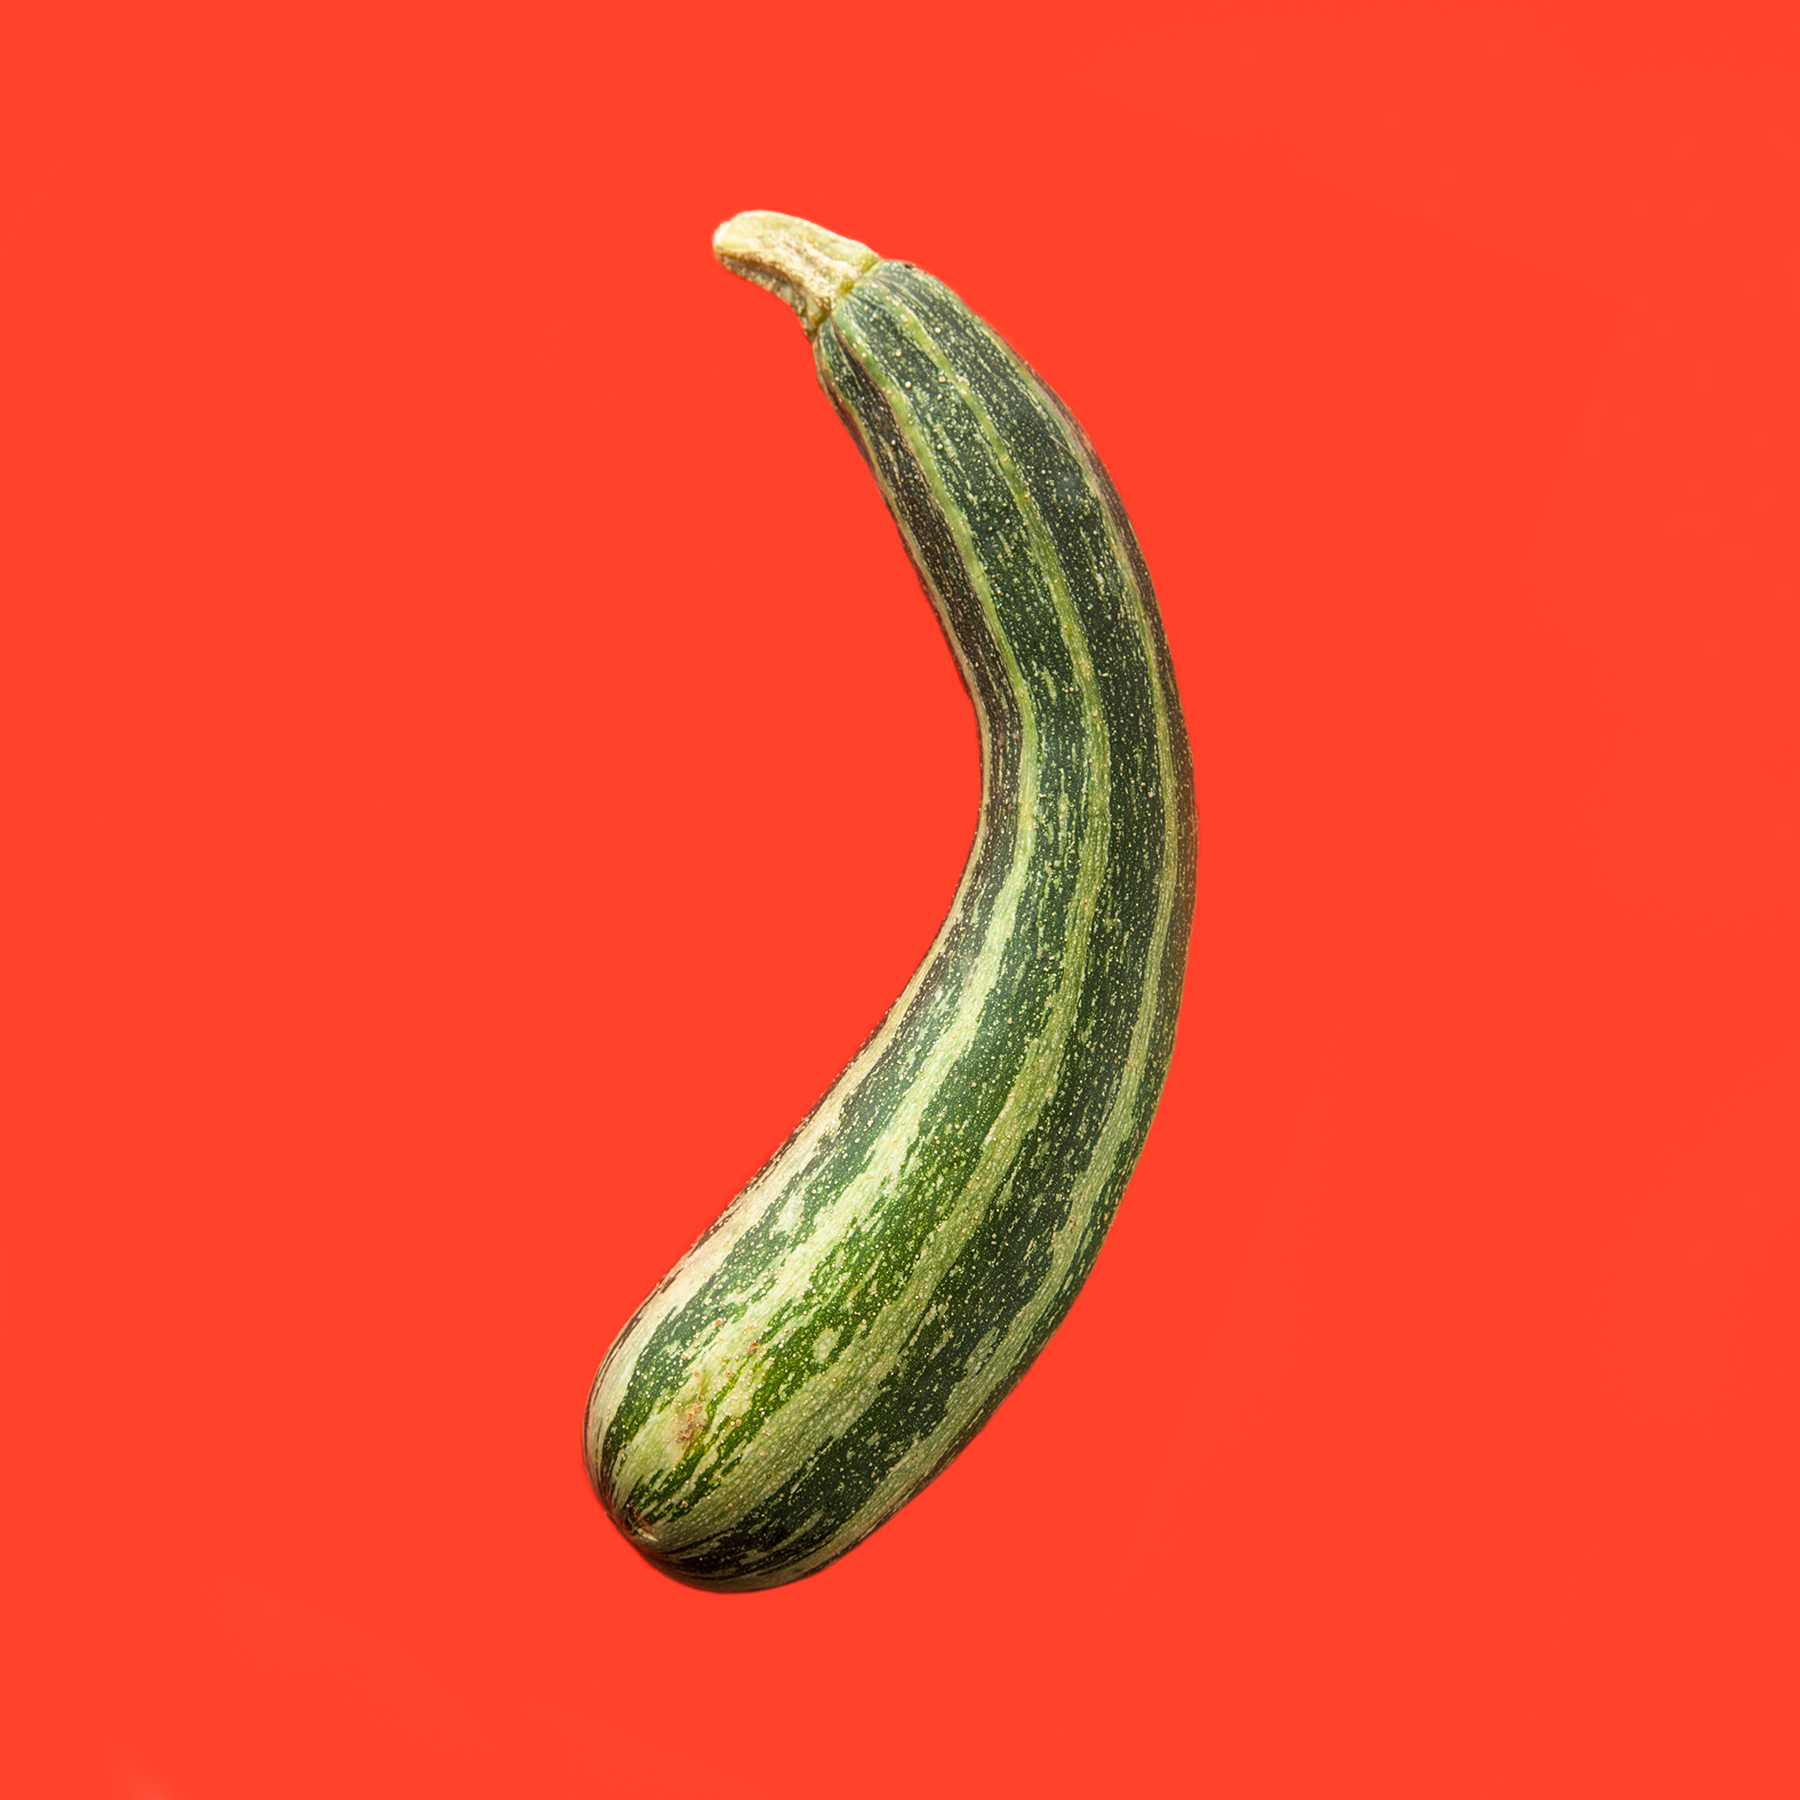 ZUCCHINI-ORGANIC-TIGER-ZUCCHINI-HICKORIES-FARM-©-JONATHAN-R.-BECKERMAN-PHOTOGRAPHY-083016_COLOR.jpg